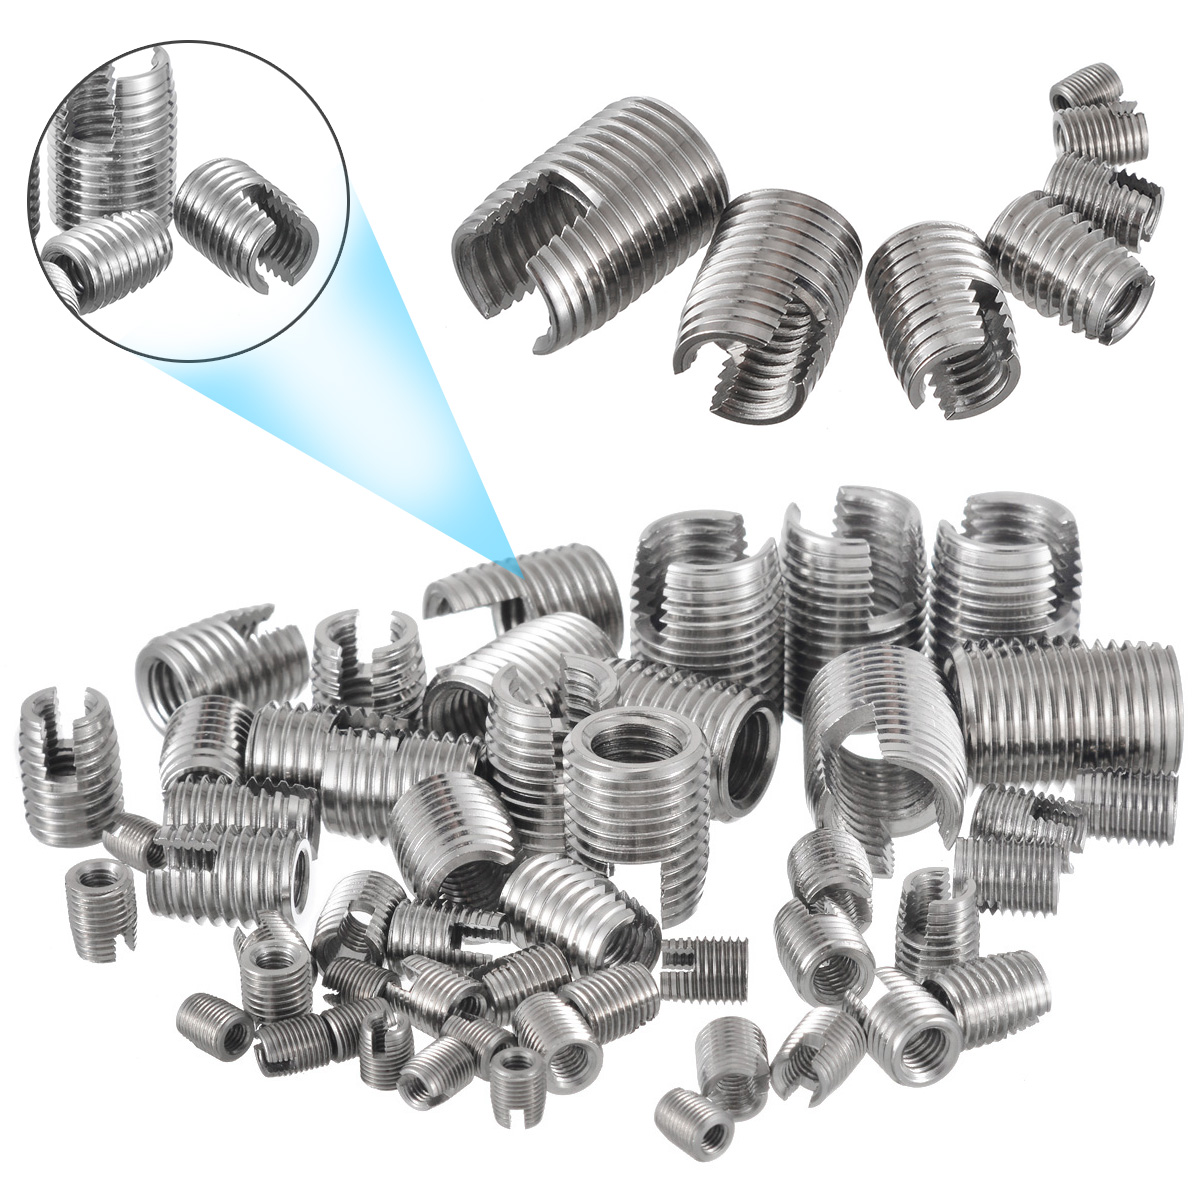 50Pcs/Set Thread Repair Insert Kit Stainless Steel M3/M4/M5/M6/M8/M10/M12 Silver Self Tapping Slotted Screw New50Pcs/Set Thread Repair Insert Kit Stainless Steel M3/M4/M5/M6/M8/M10/M12 Silver Self Tapping Slotted Screw New